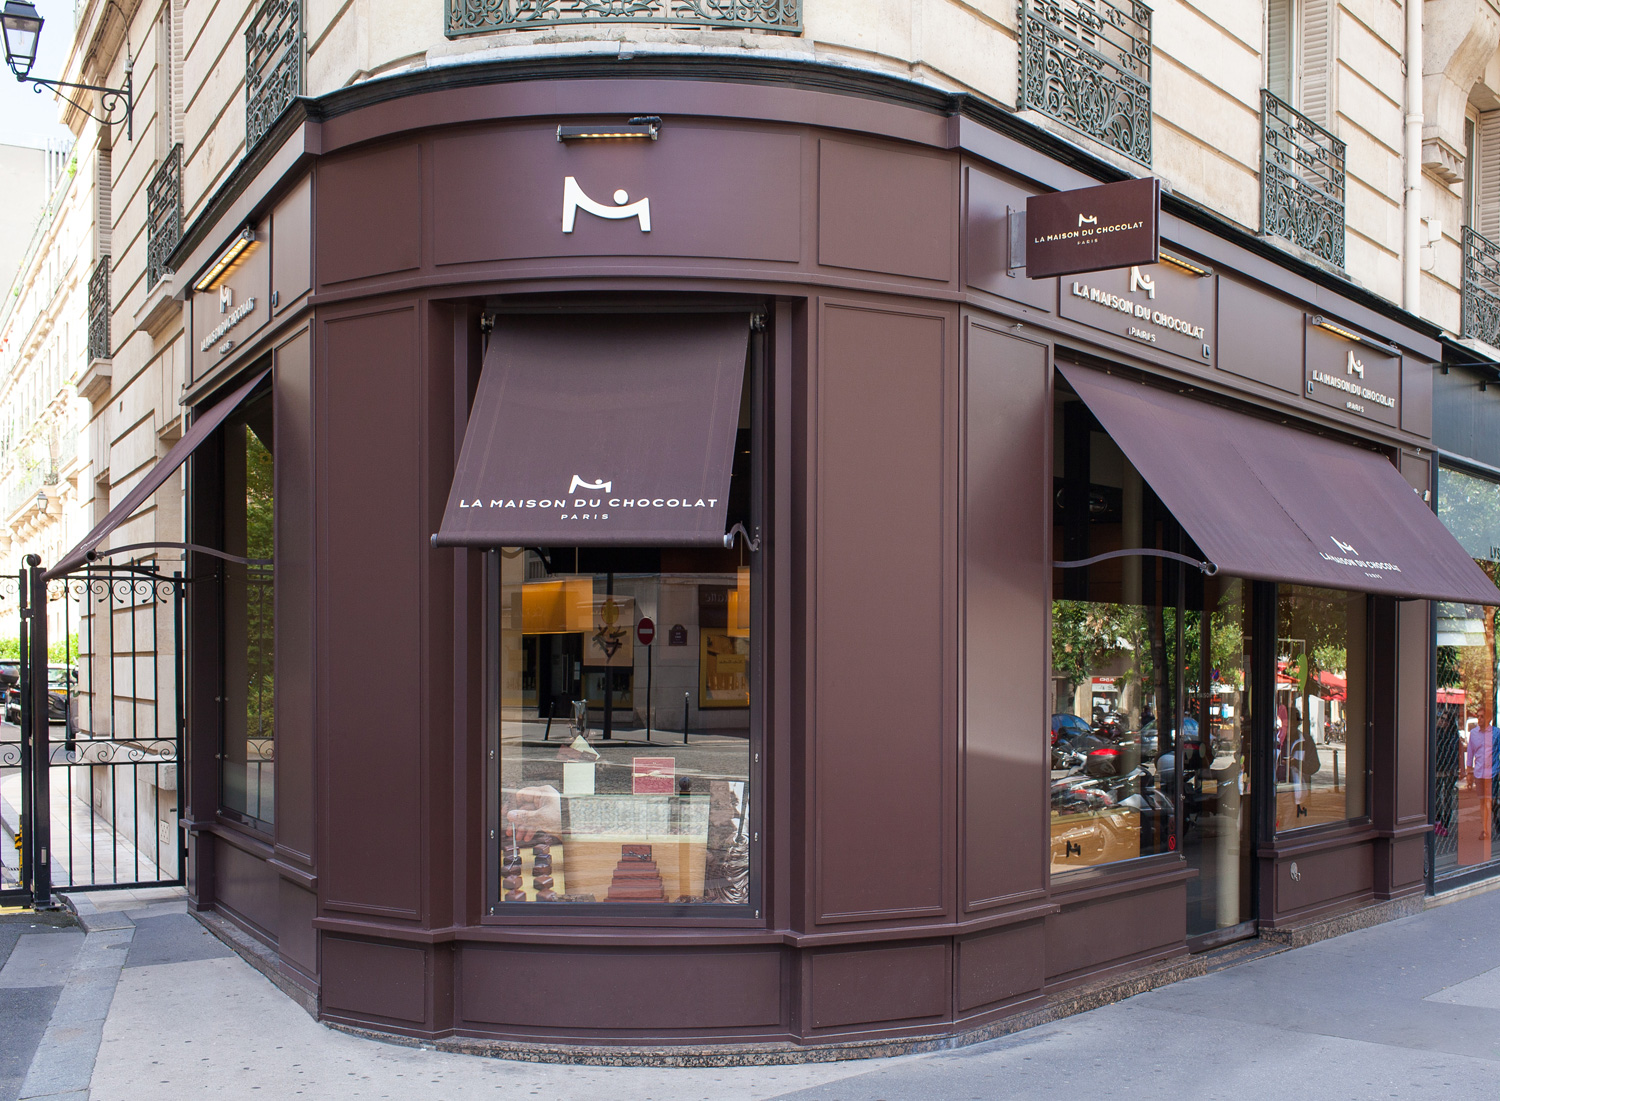 la maison du chocolat paris mycityhighlight. Black Bedroom Furniture Sets. Home Design Ideas